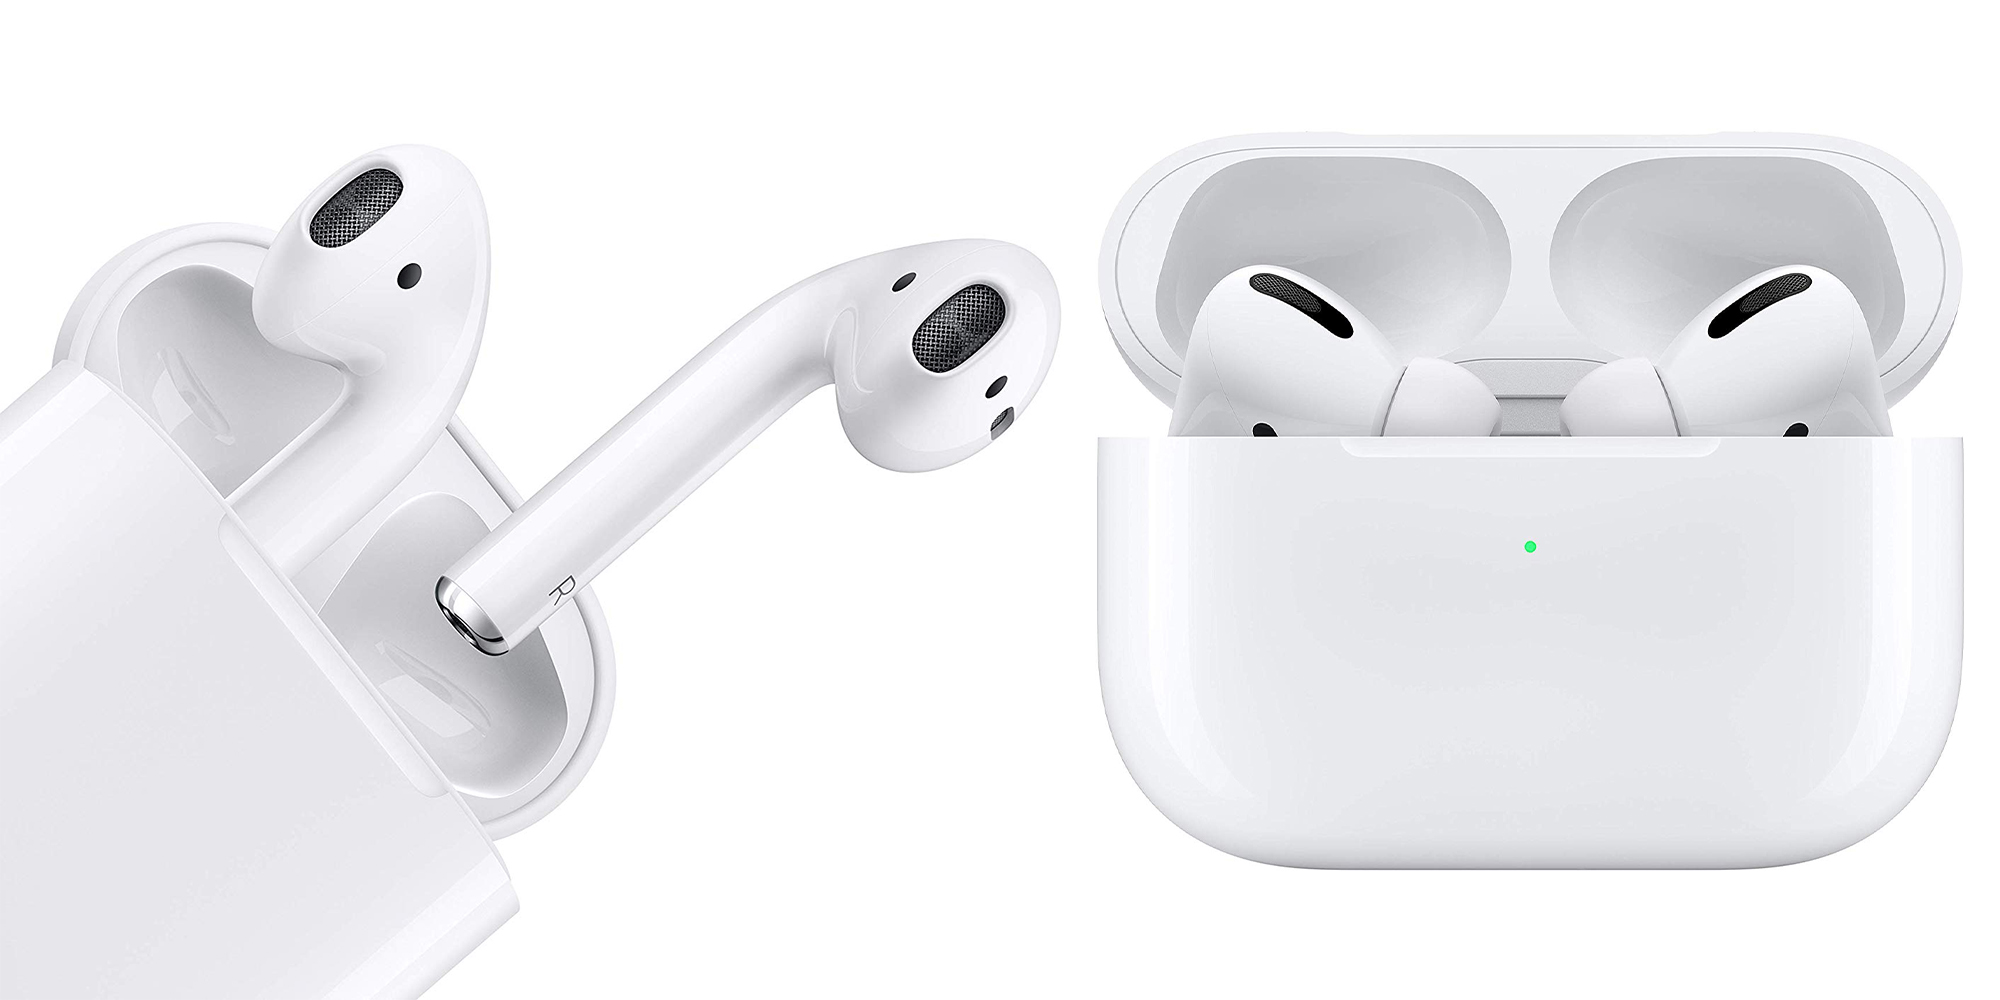 Update Lower Prices Apple S Latest Airpods At All Time Lows 2nd